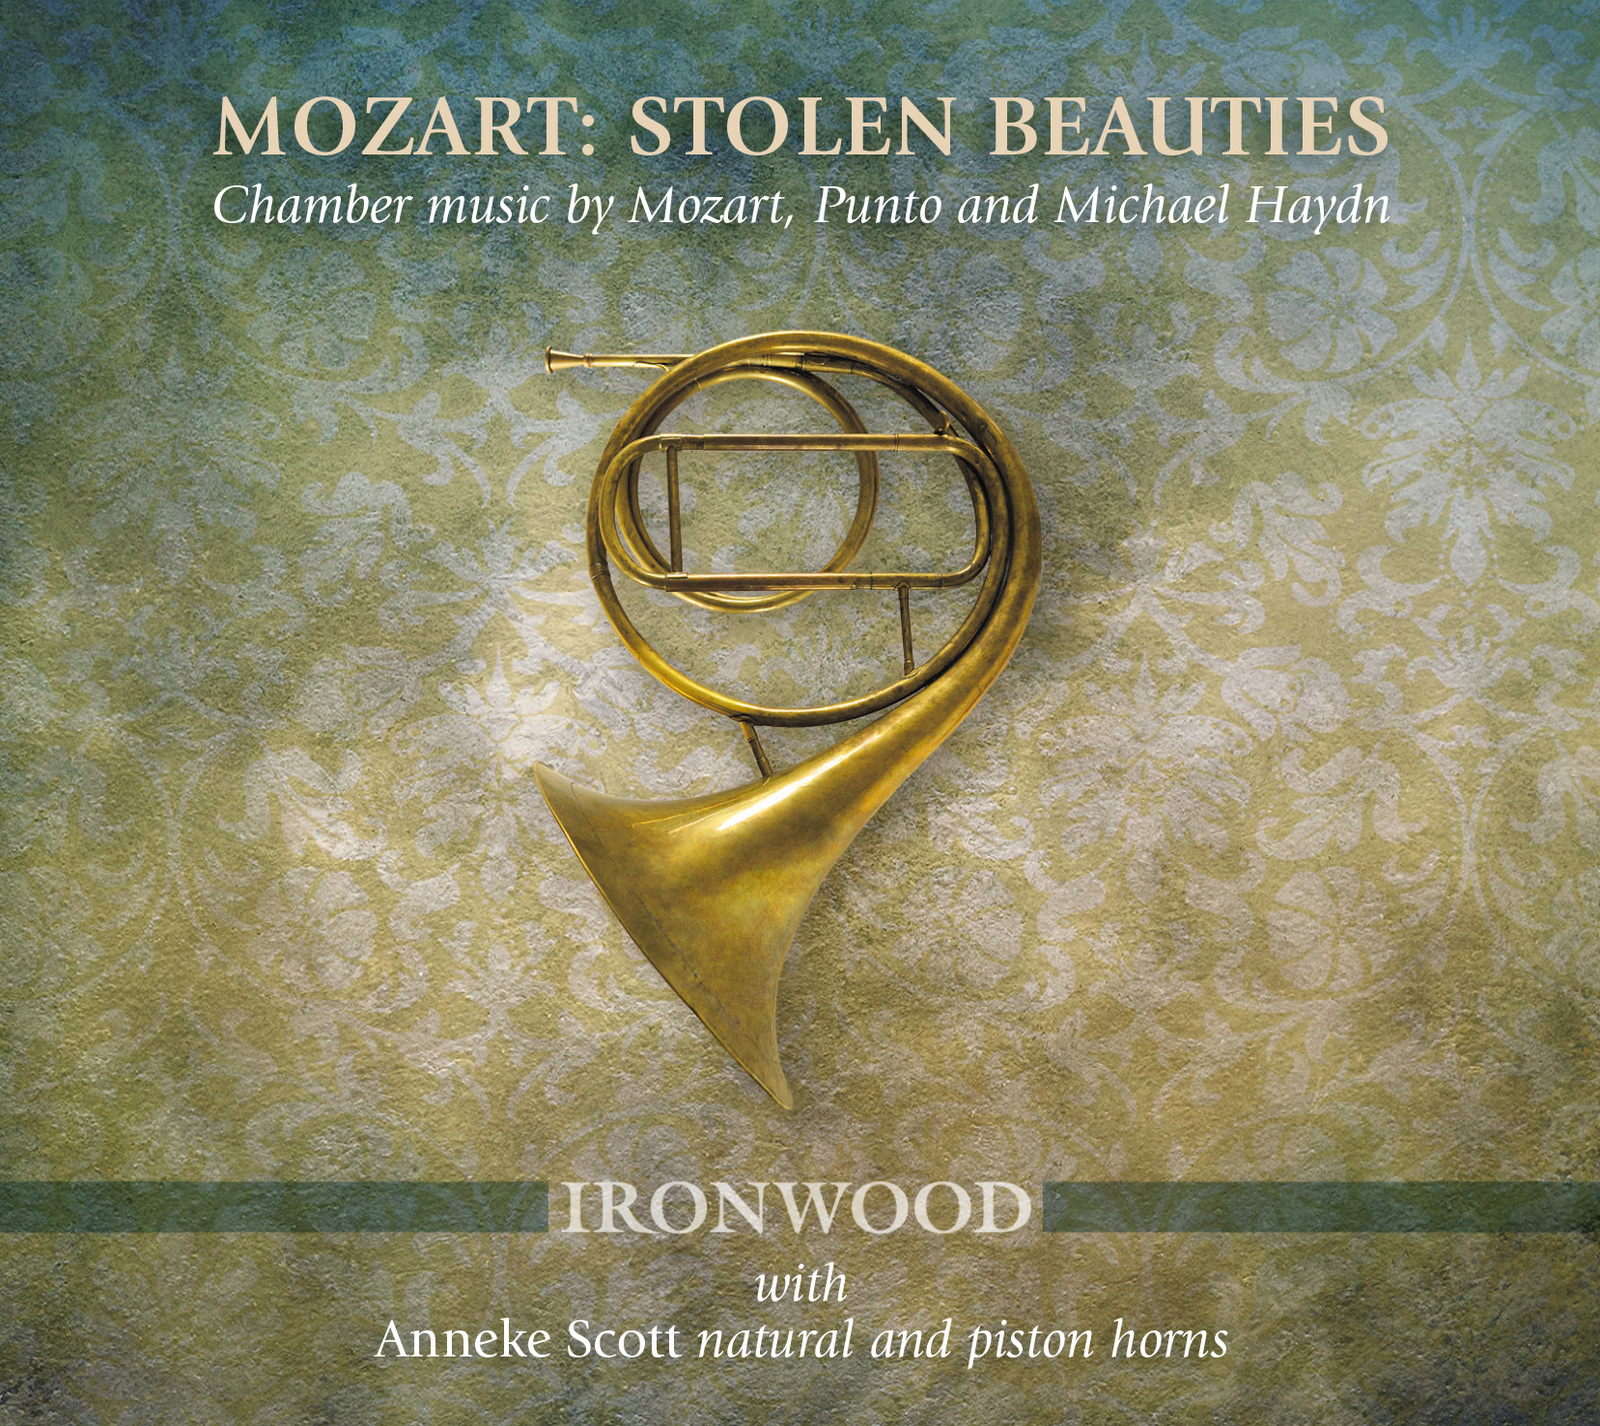 Mozart: Stolen Beauties. Chamber music by Mozart, Punto and Michael Haydn.Anneke Scott (Natural & Piston horns), IronwoodABC Classics, 2015. -